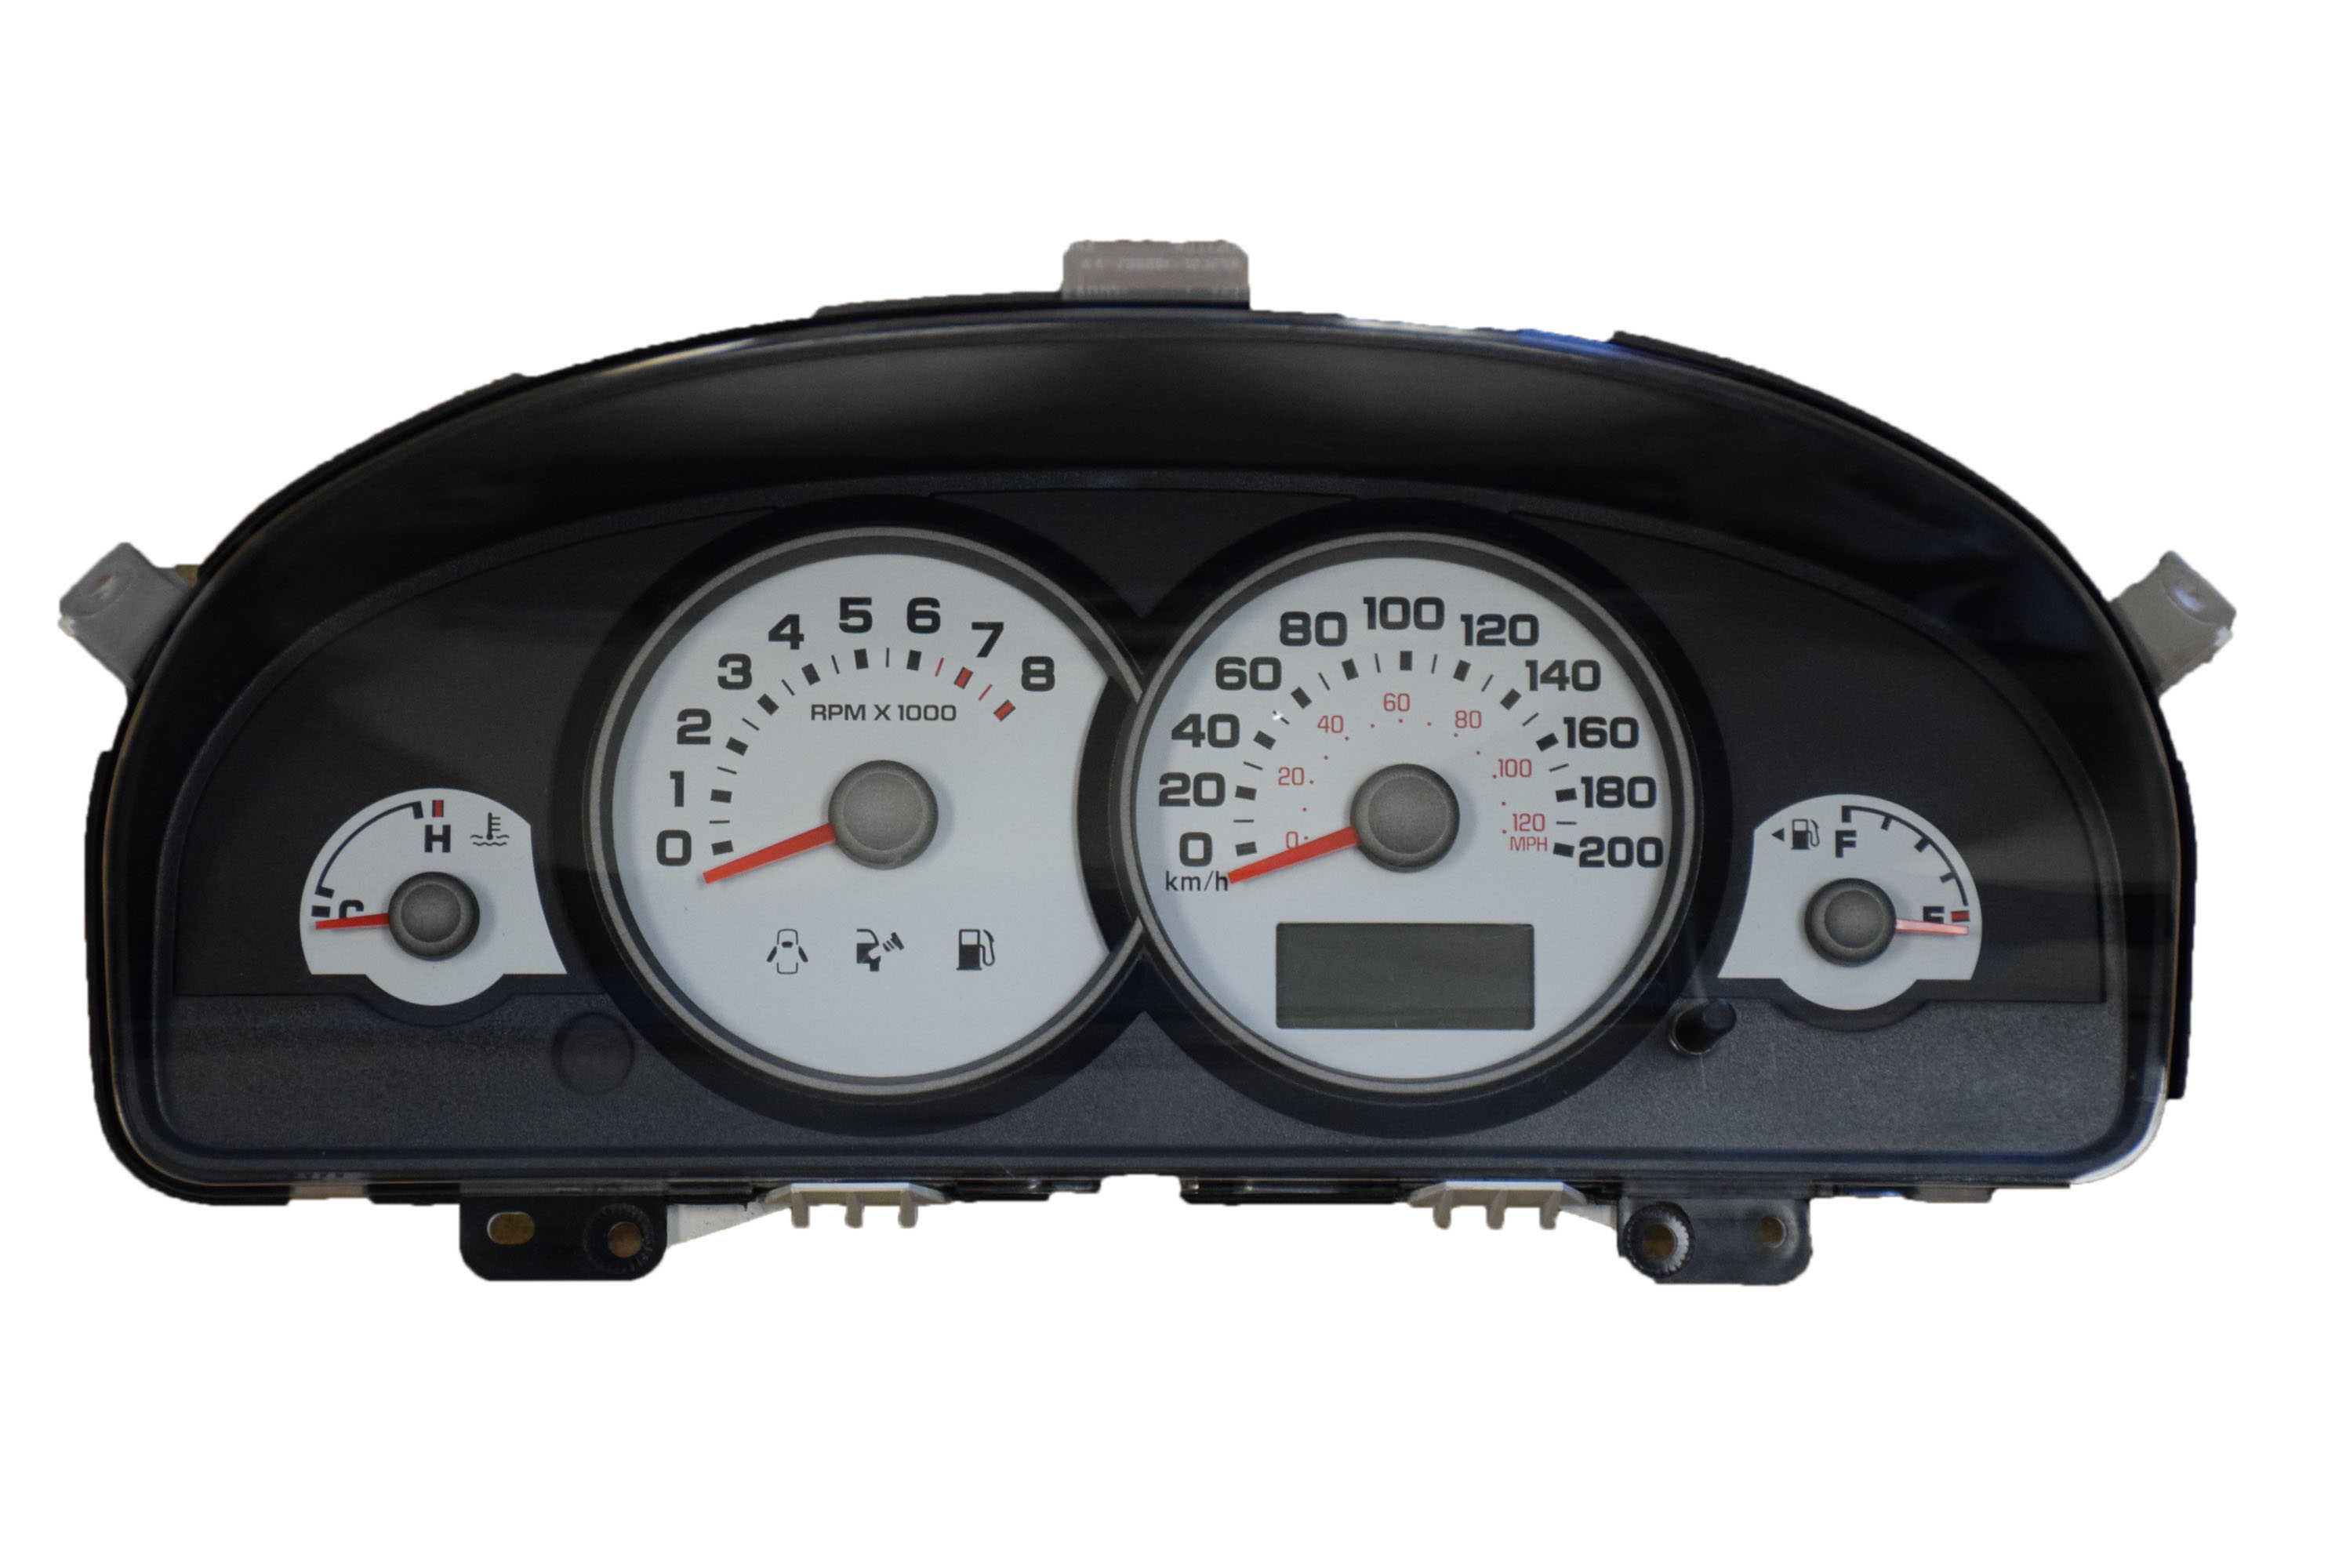 2006 2007 Ford Escape Used Dashboard Instrument Cluster For Sale Km H Dashboard Instrument Cluster